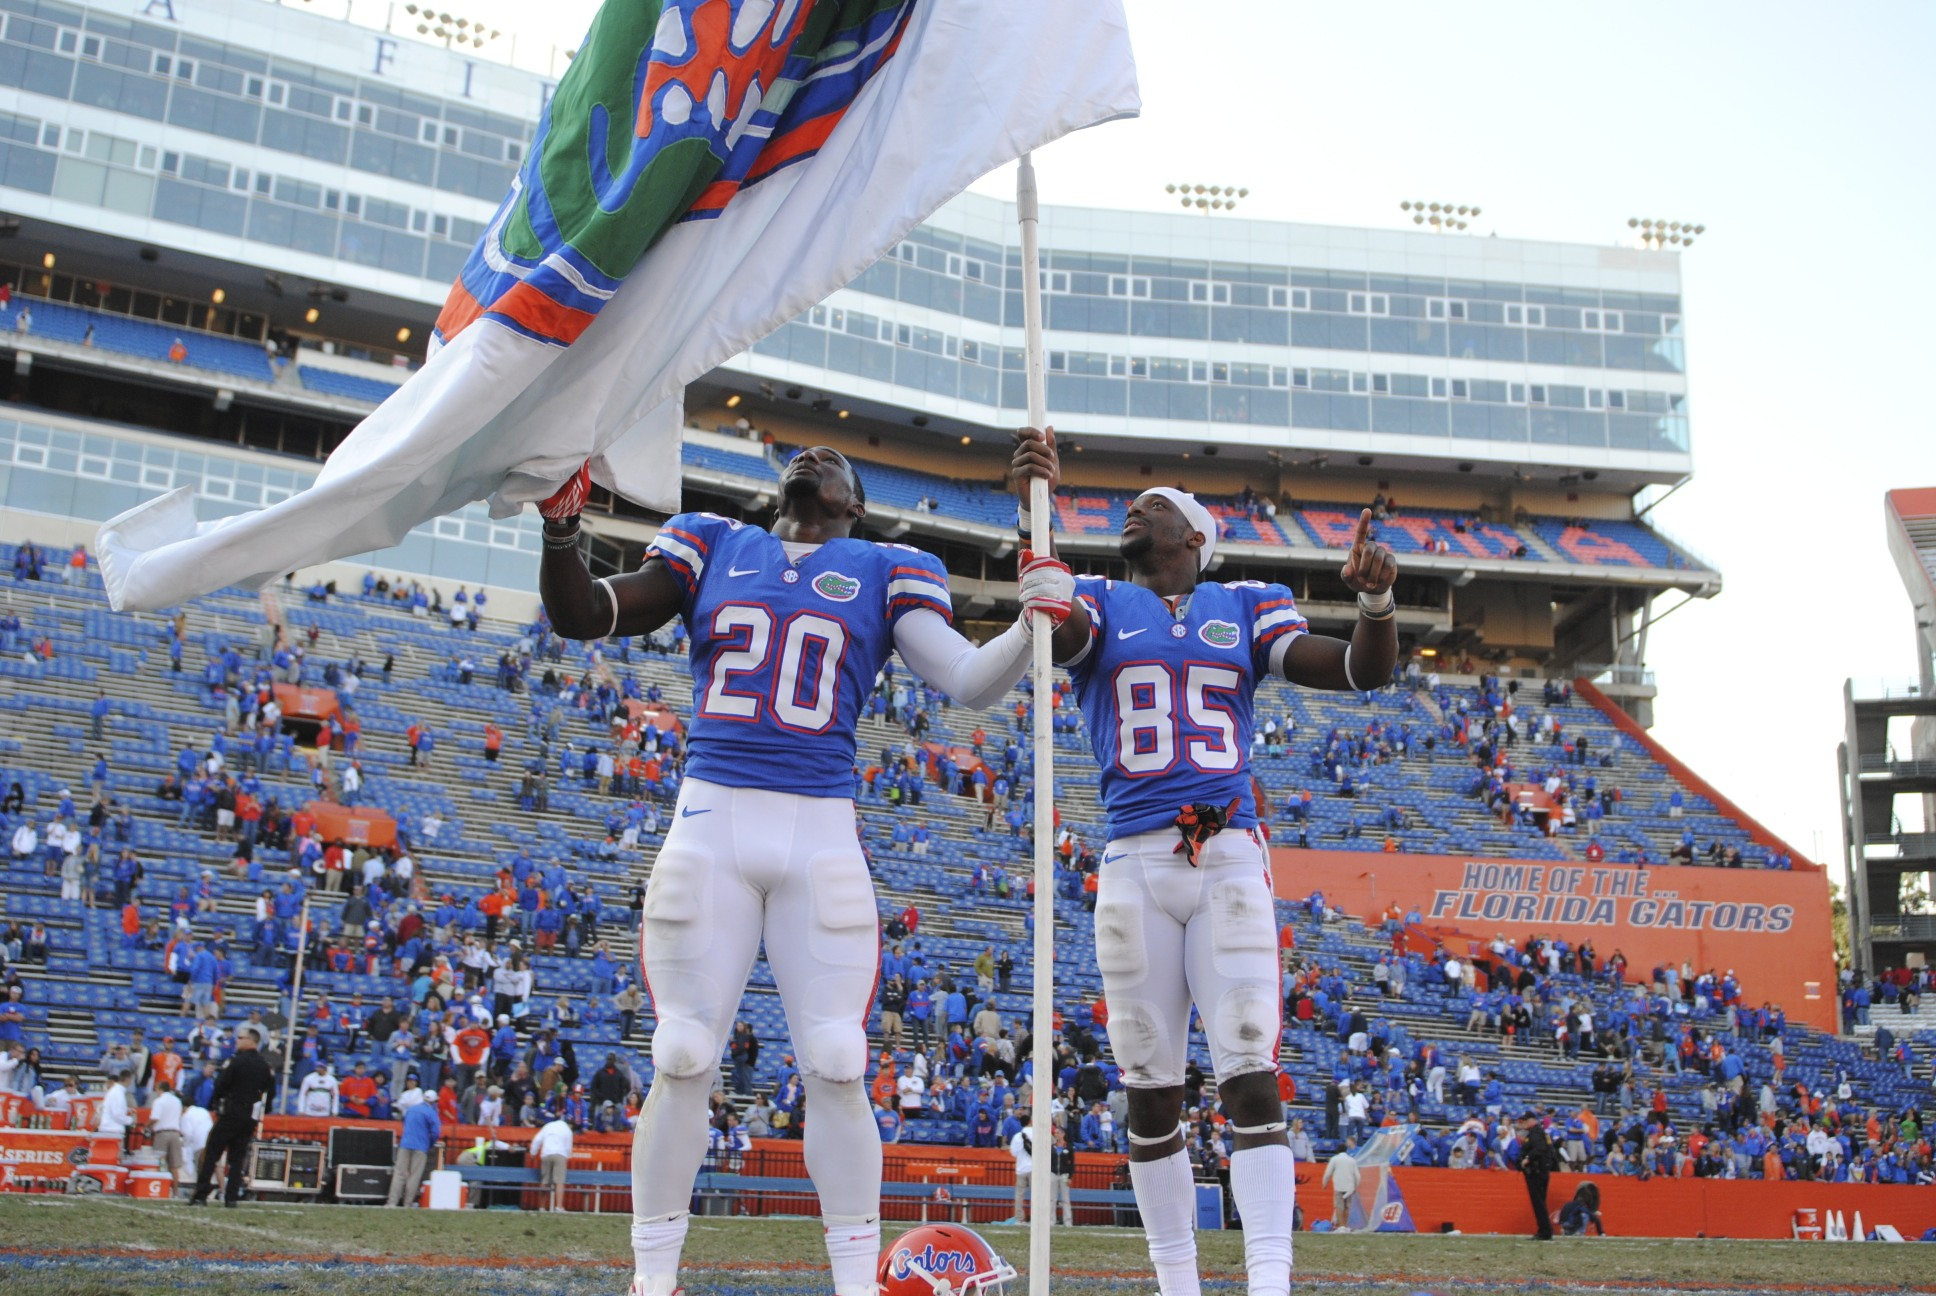 Seniors Omarius Hines (20) and Frankie Hammond Jr. (85) take pride in being Gators by holding a Gator flag after Saturday's game.